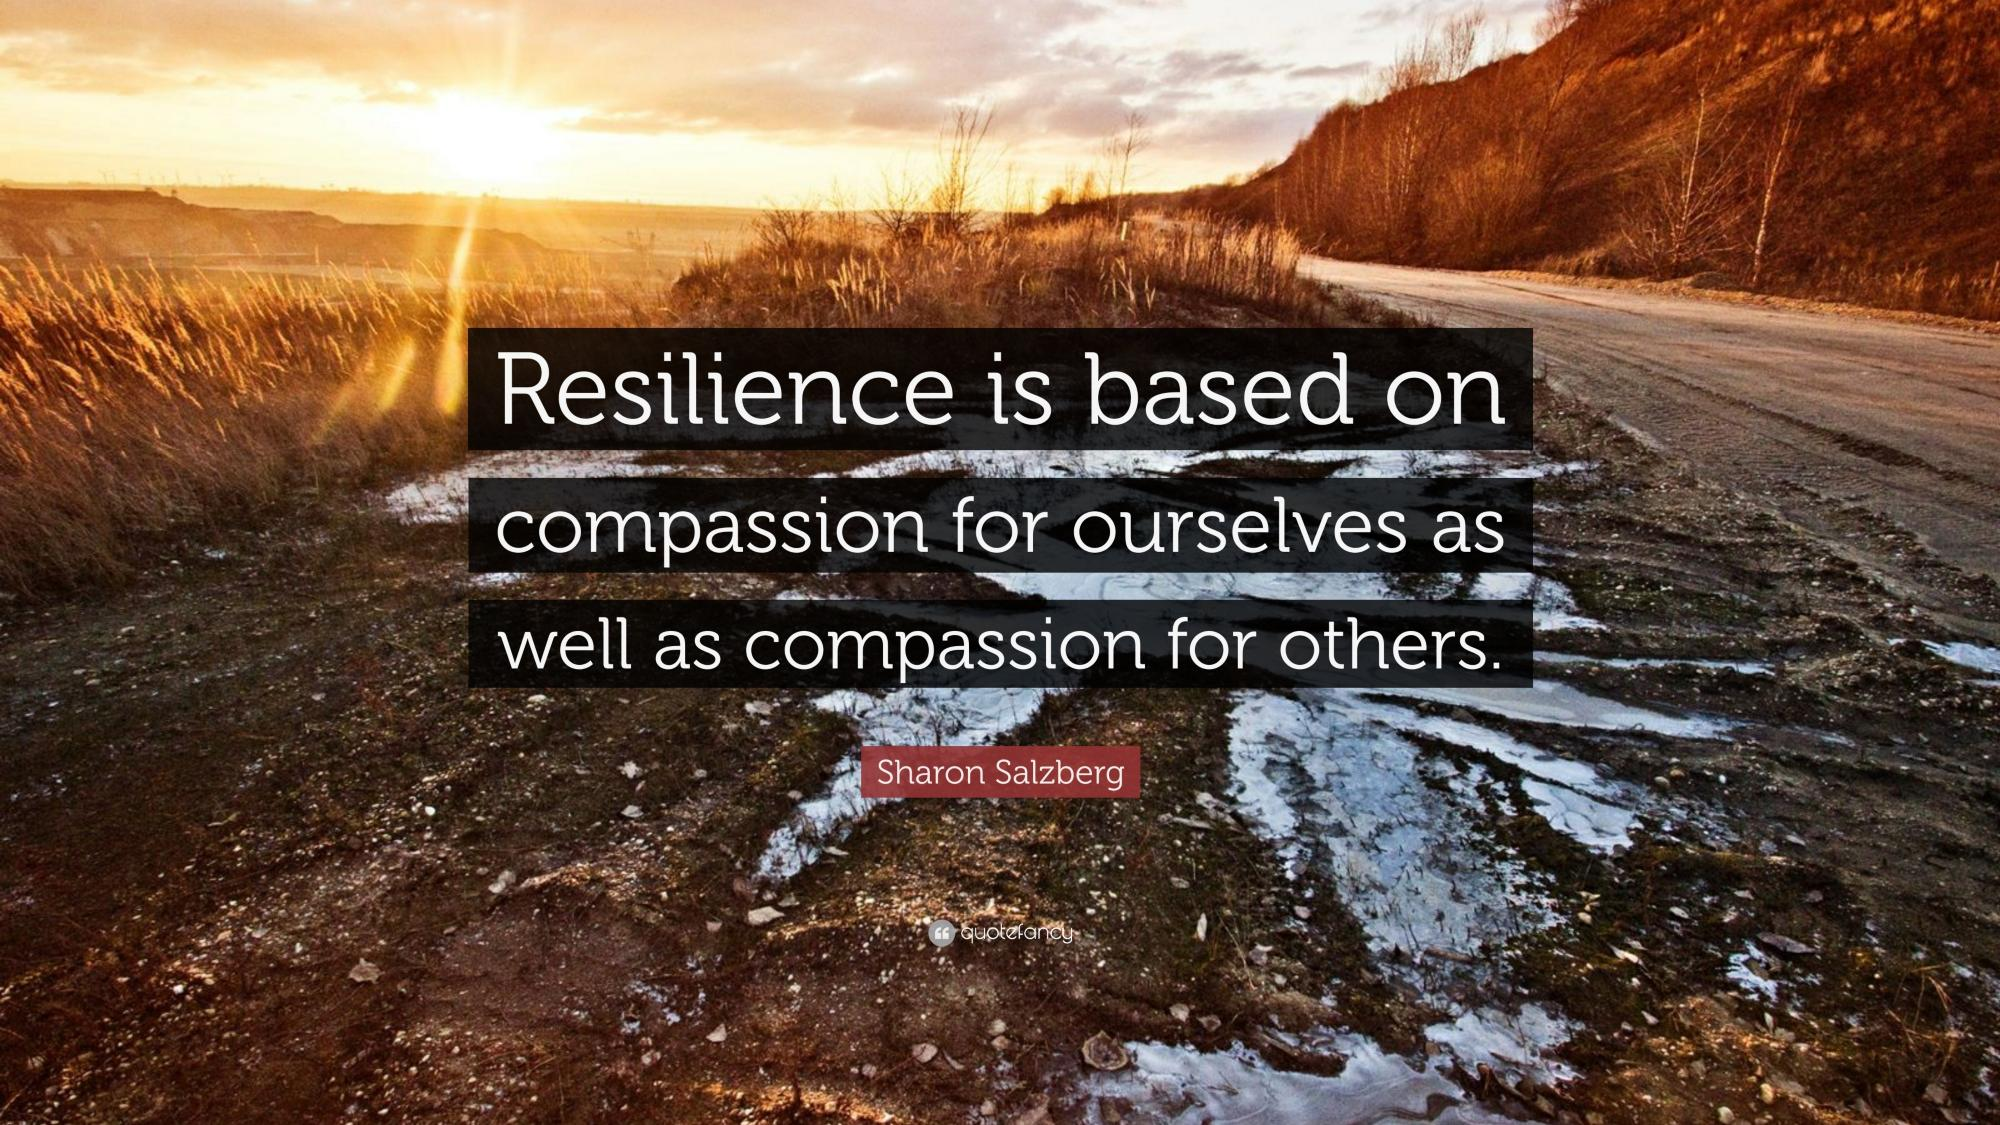 Resiliency quote.